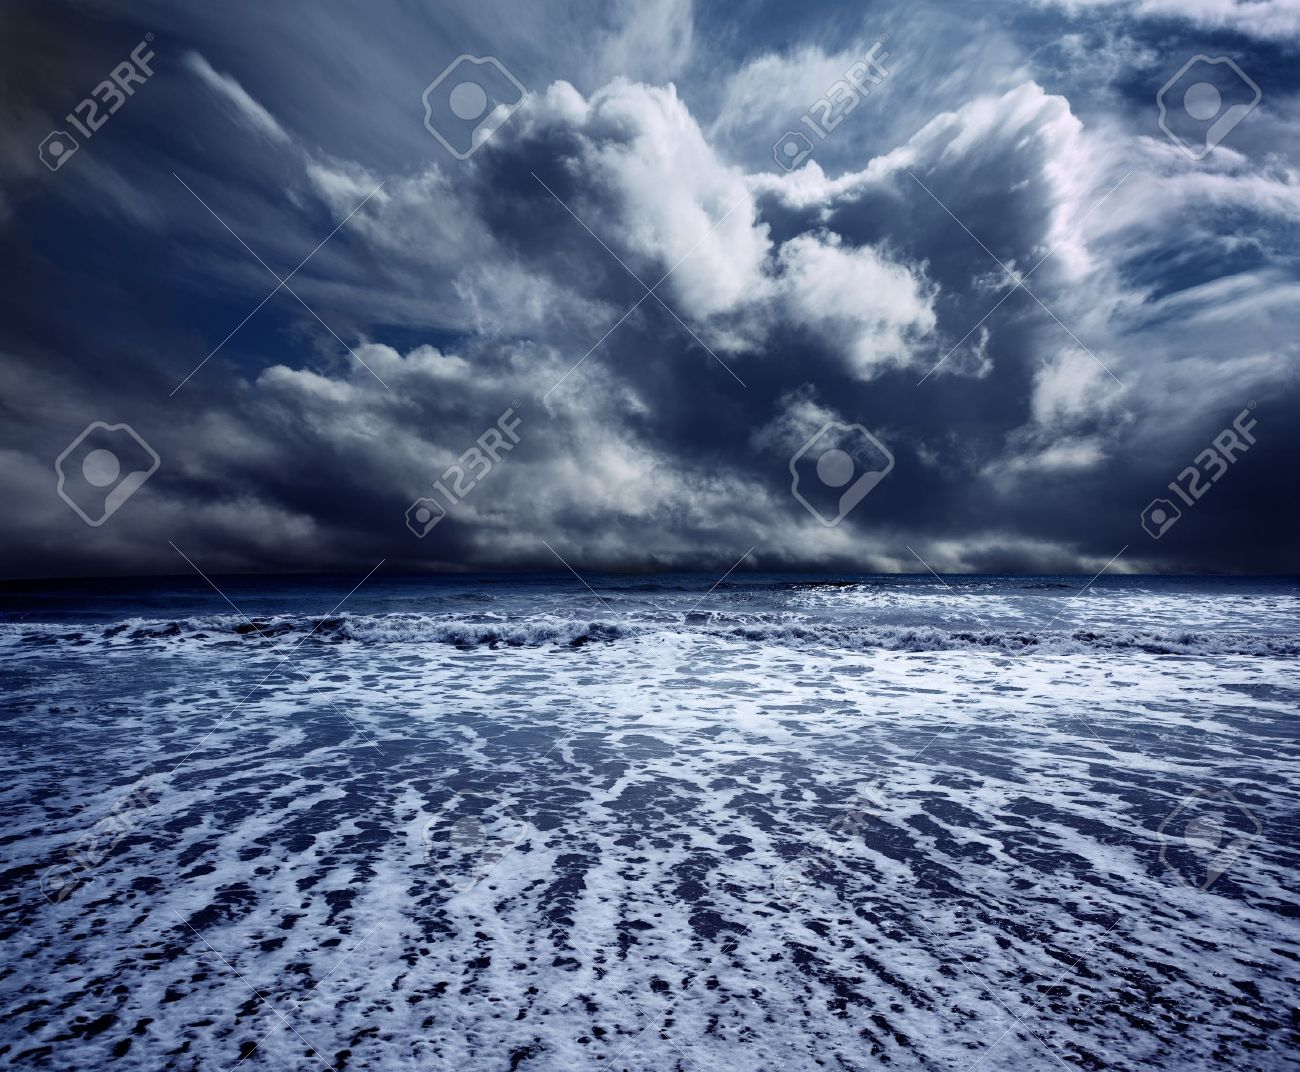 Background ocean storm with waves and clouds Stock Photo - 9867039